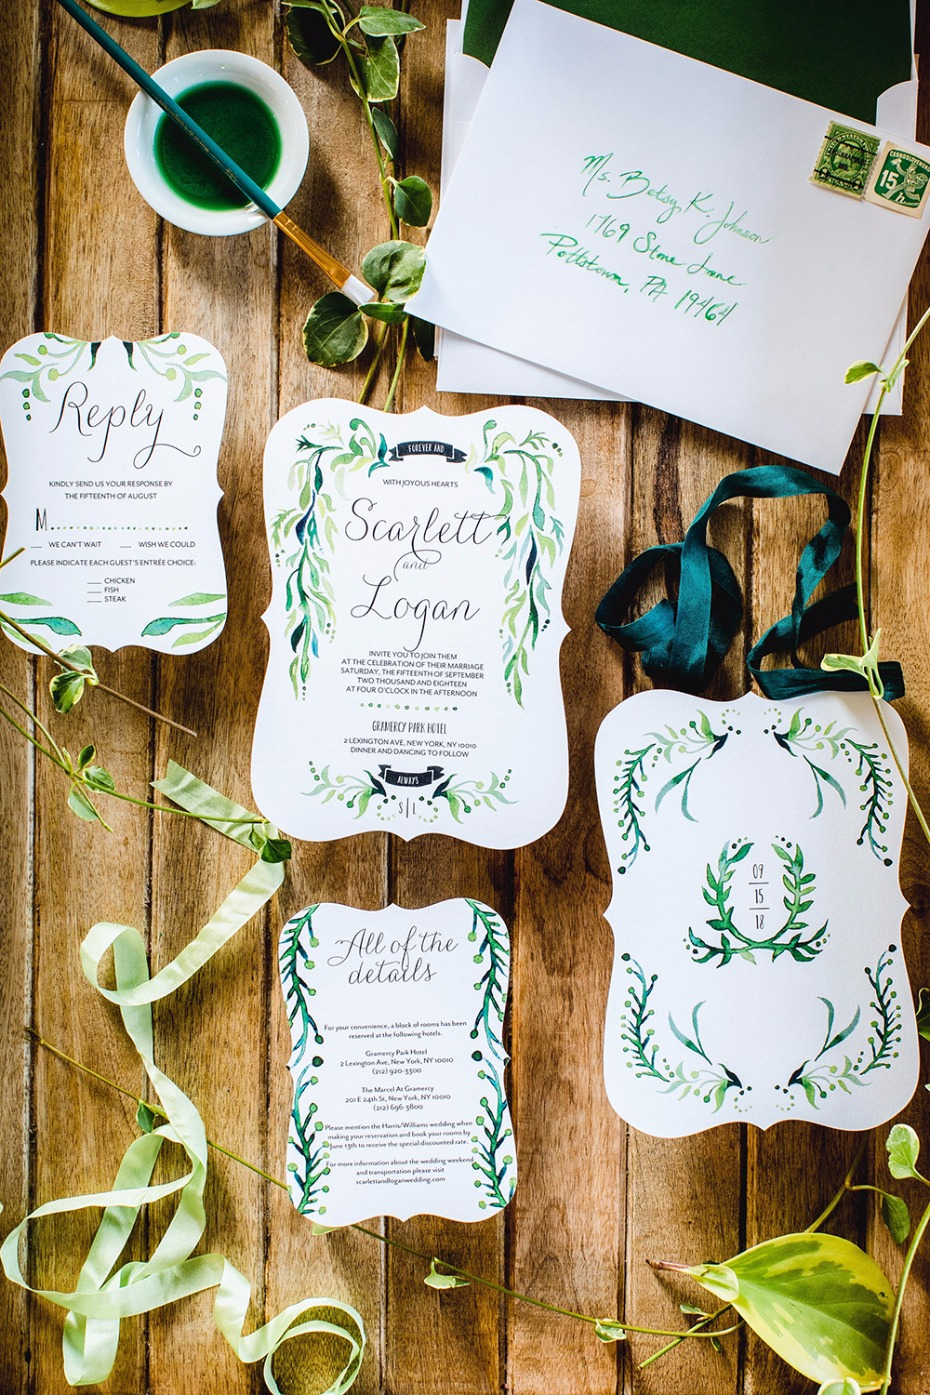 watercolor wedding invites from Shutterfly